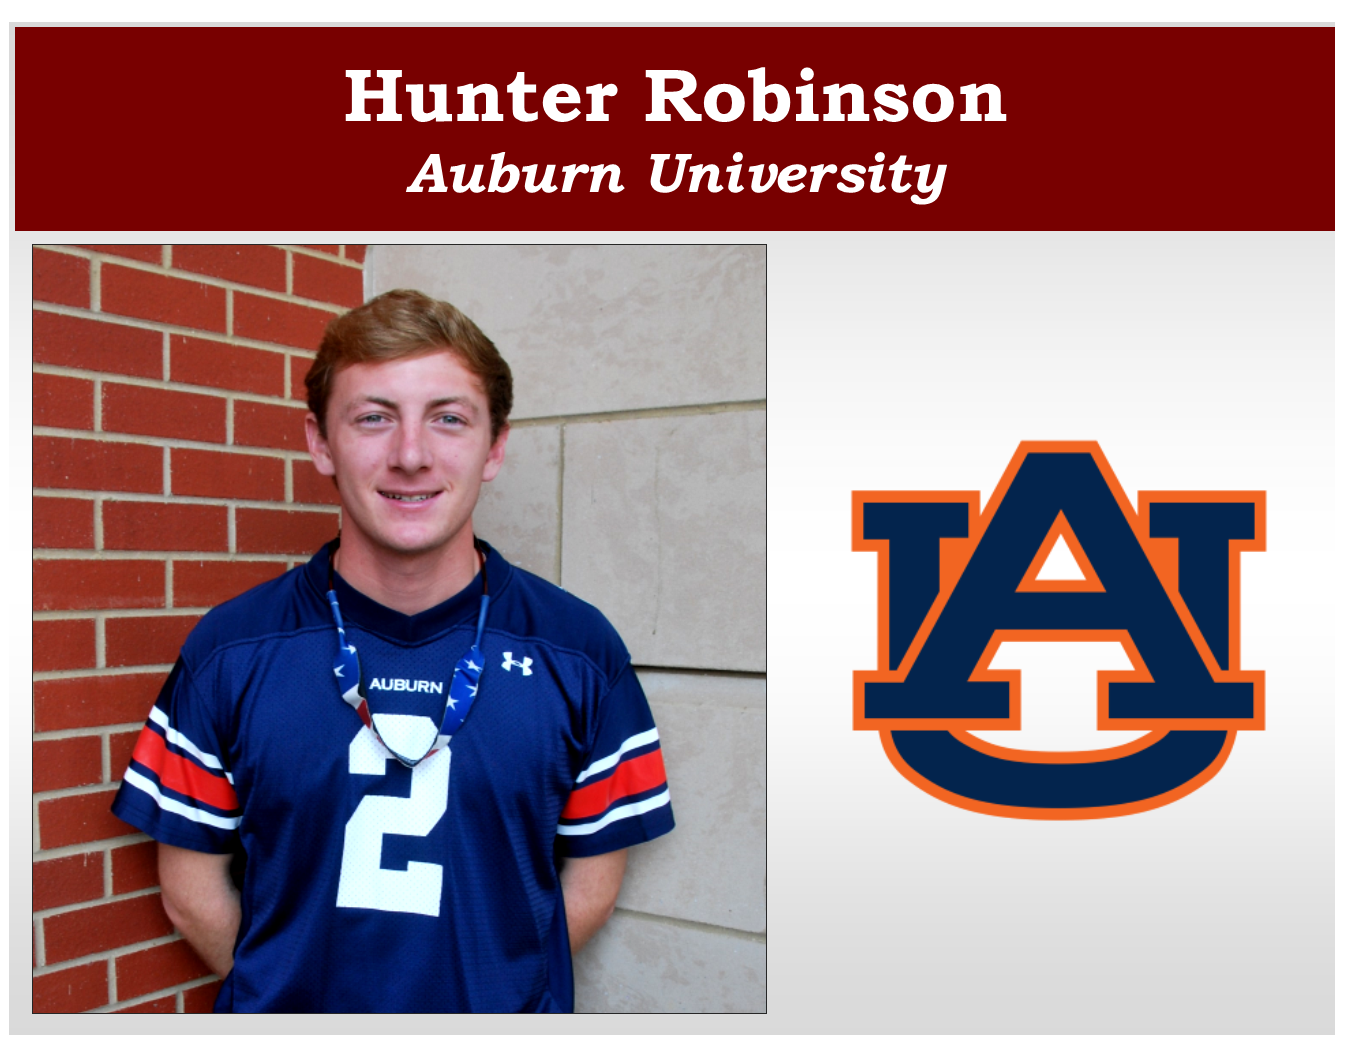 Hunter Robinson